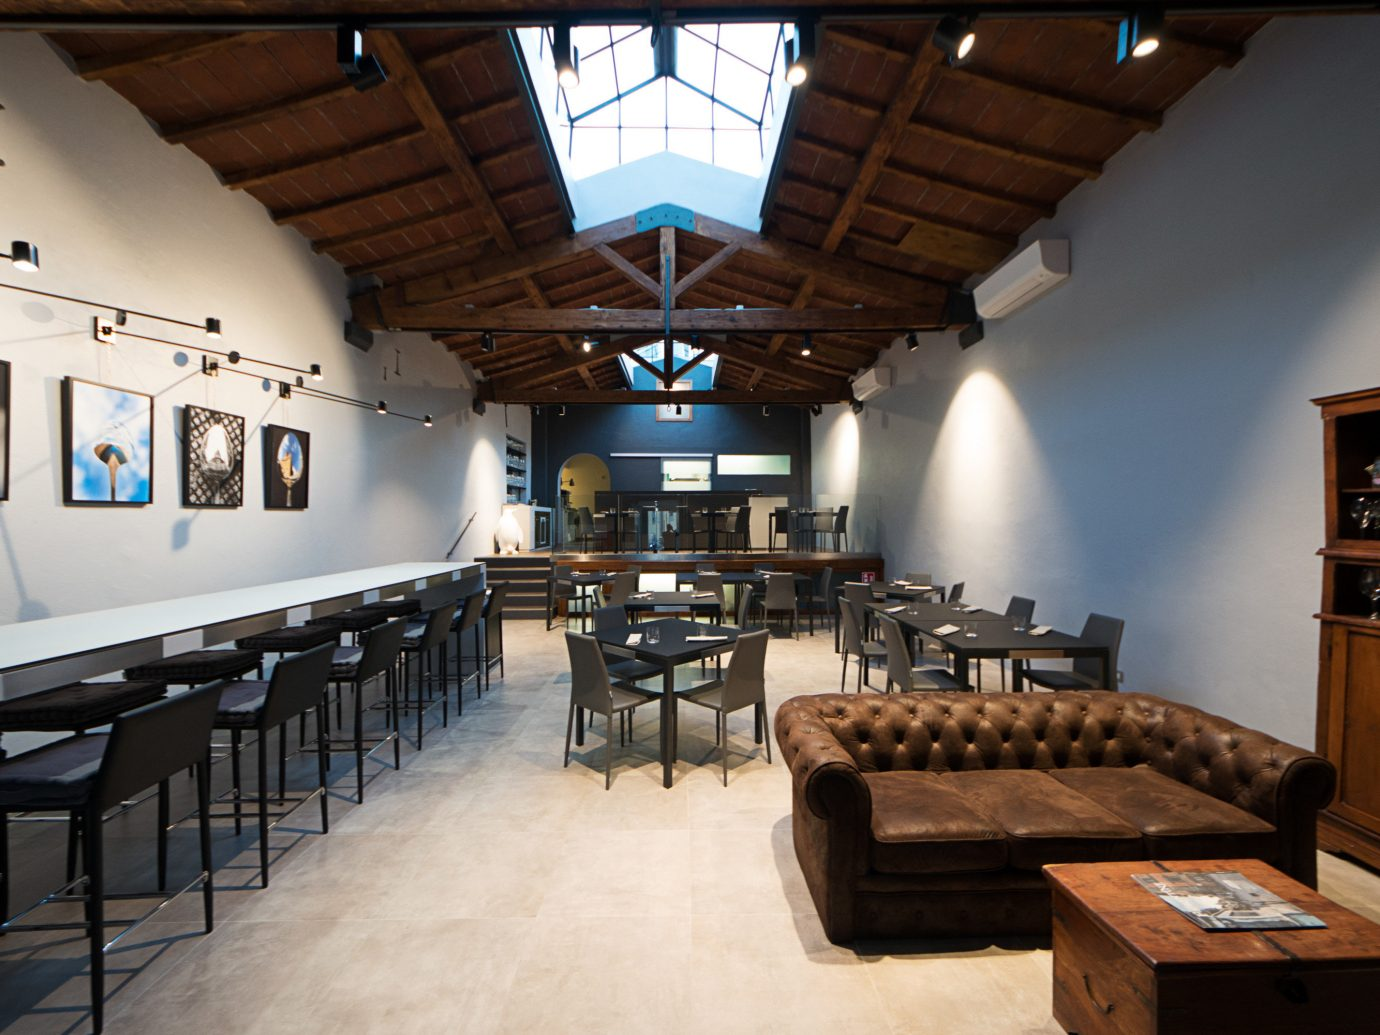 Food + Drink indoor floor ceiling room interior design estate restaurant Design furniture several dining room